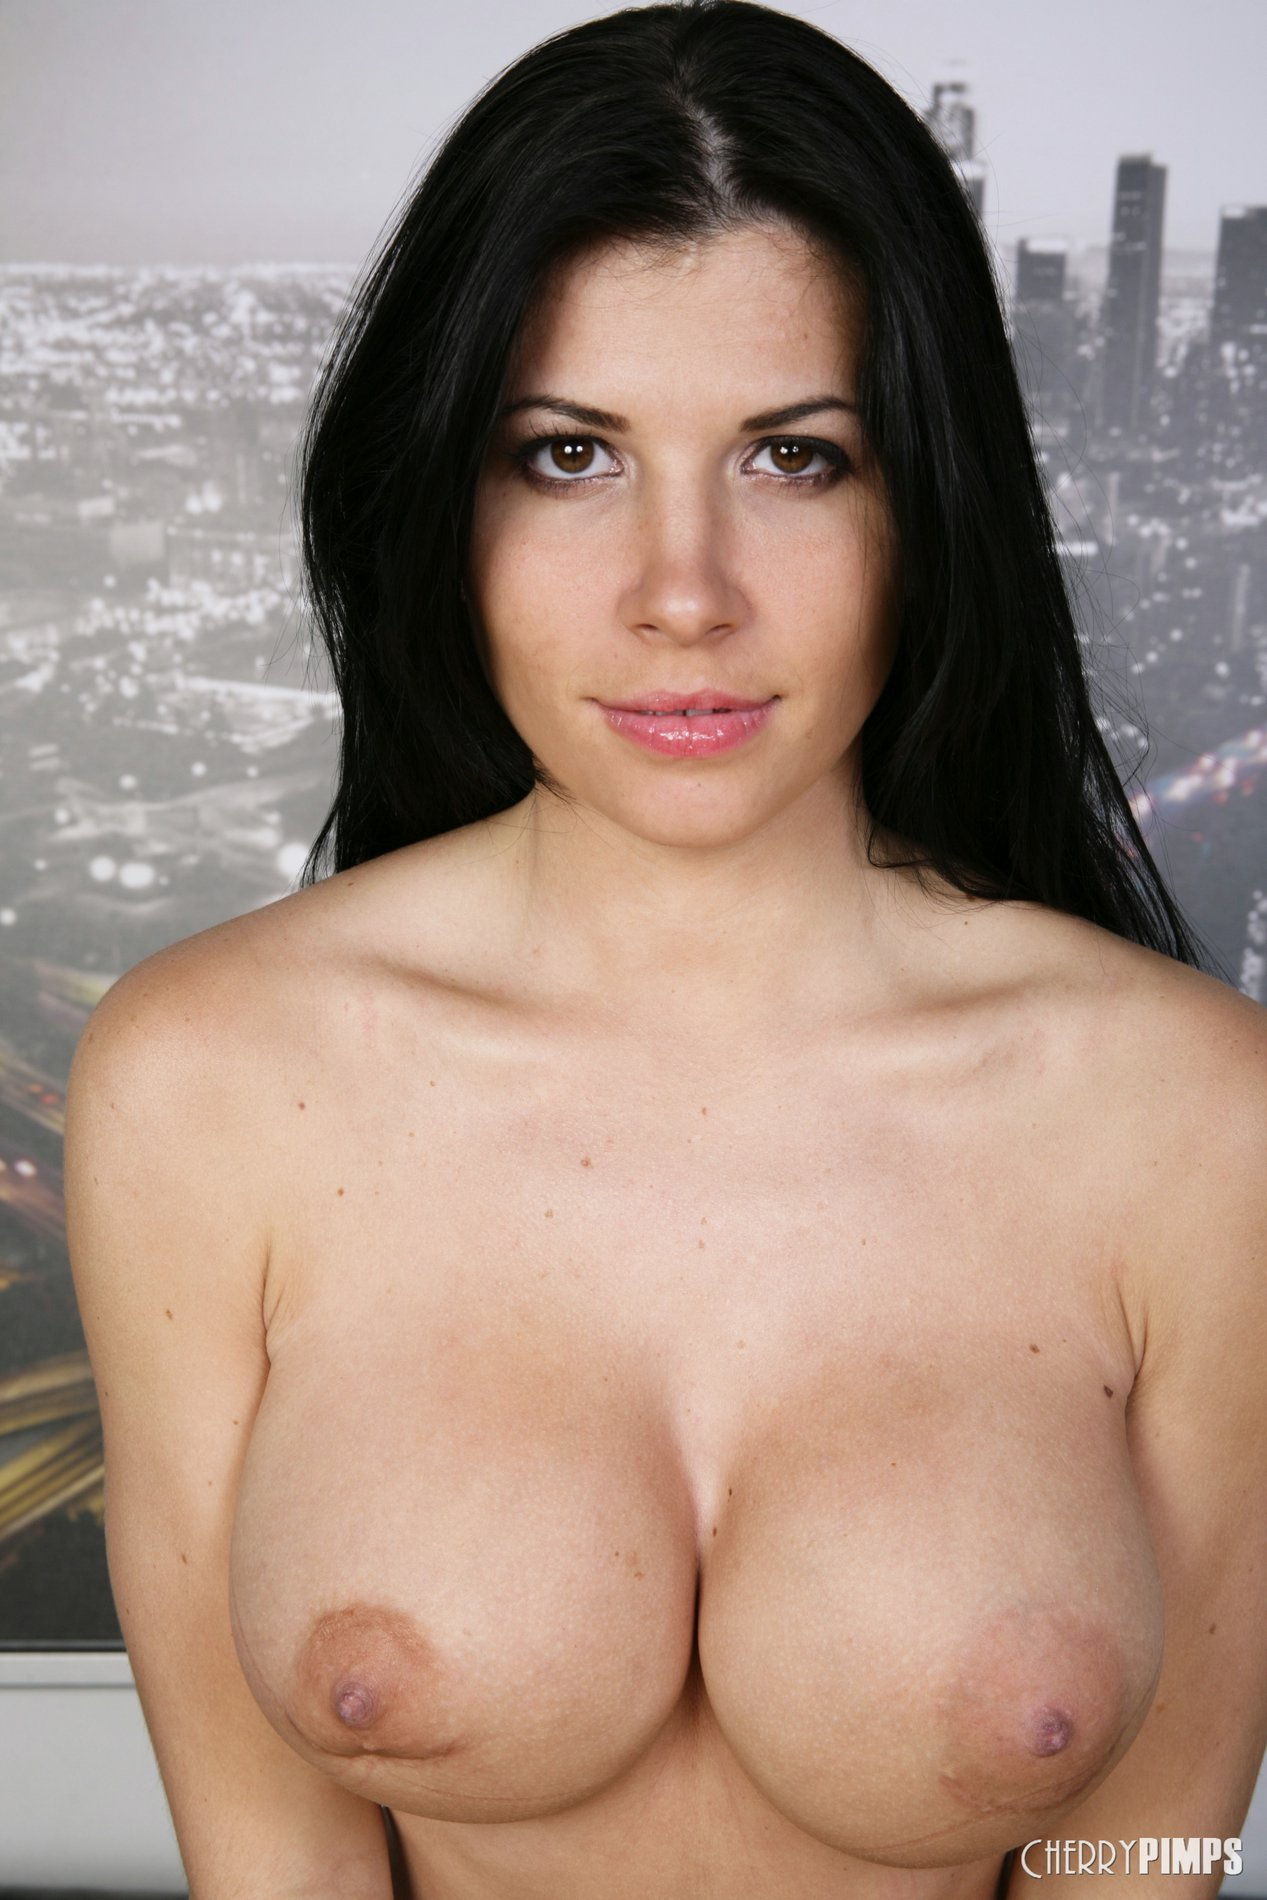 Pretty brunette Rebeca Linares shows off her hot body.: mypornstarbook.net/pornstars/r/rebeca_linares/gallery68/mobile.php